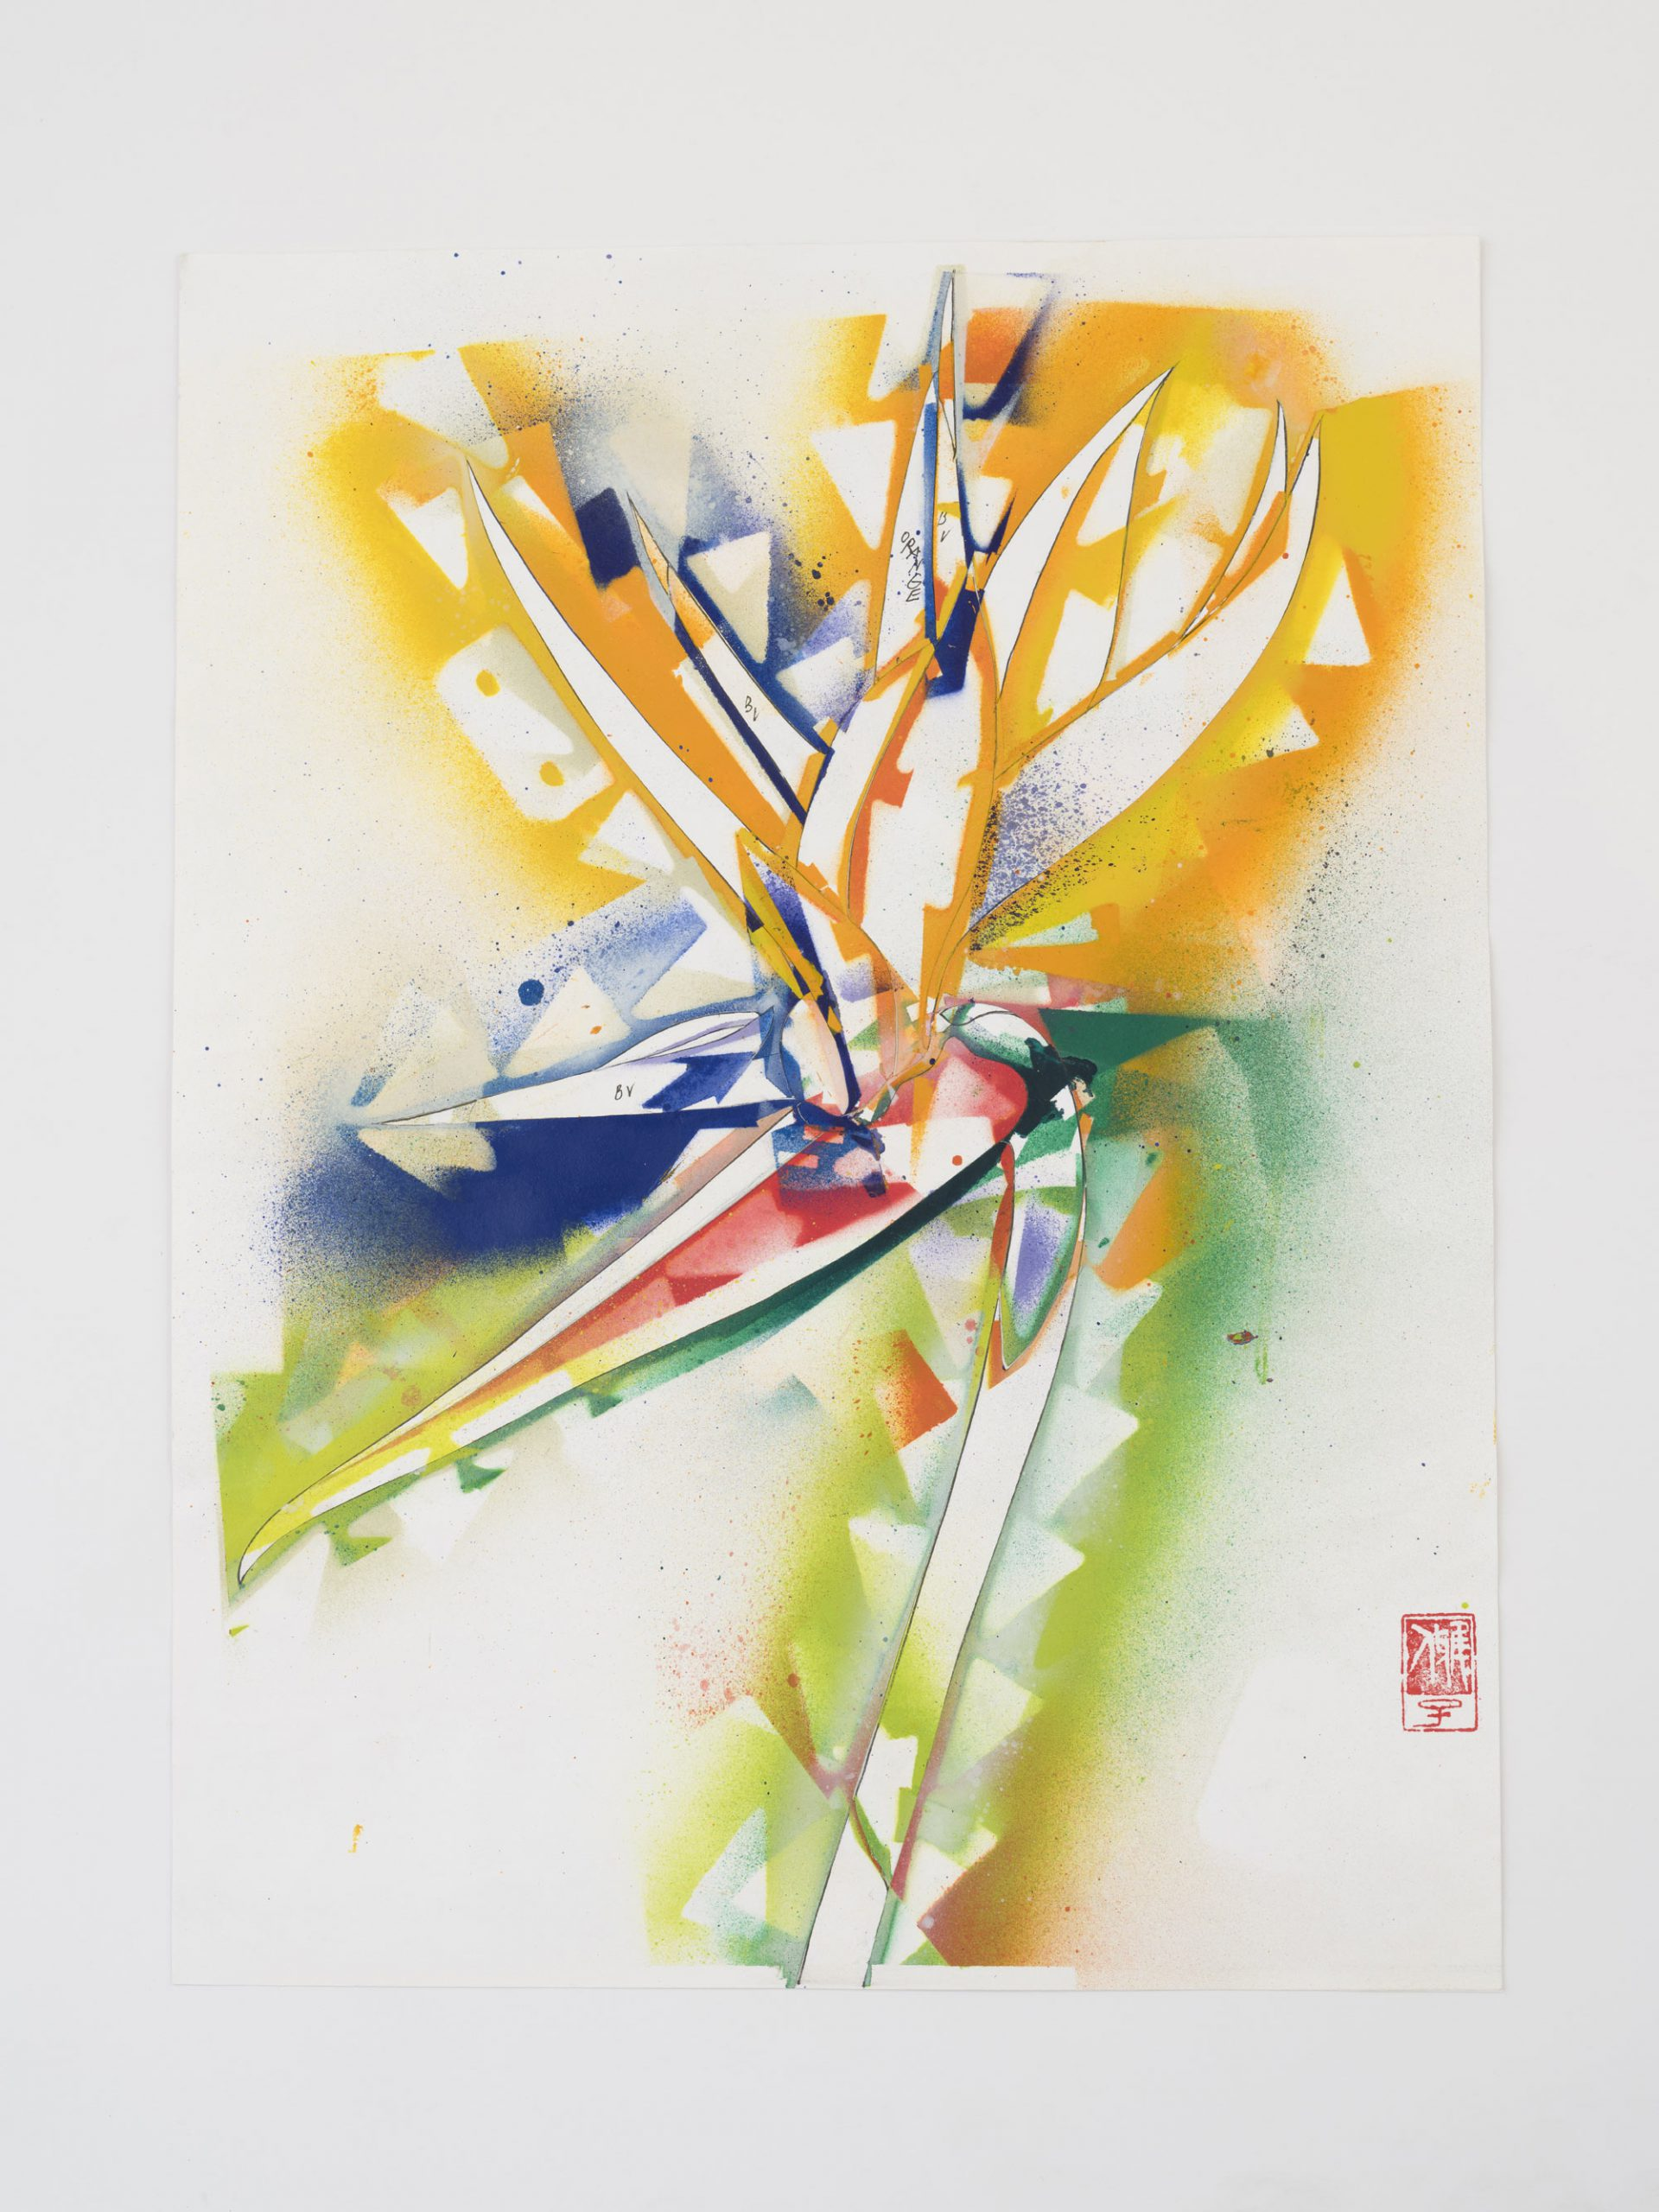 Gajin Fujita<br> Study of Home Field LA (Bird of Paradise 2), 2020<br> pencil, ink and spraypaint on paper<br> 14 1/2 x 17 5/16 in. (36.8 x 44 cm)